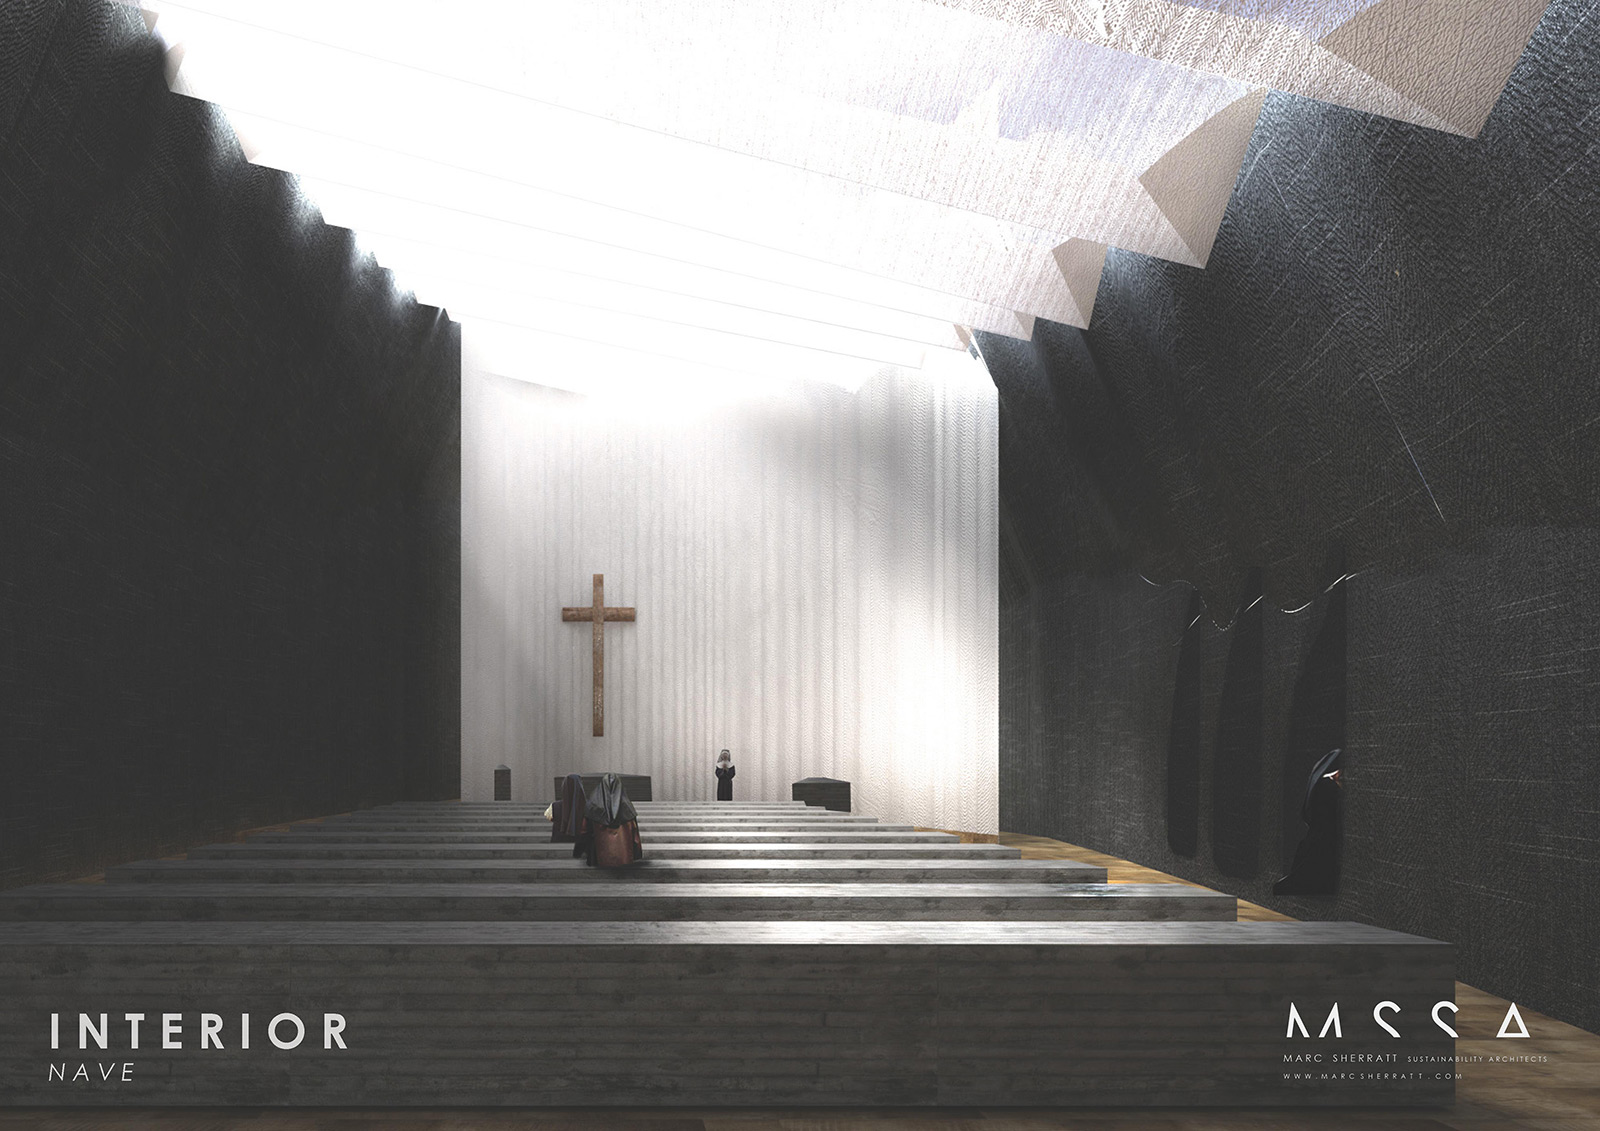 Sustainable-architecture-singing-chapel-nave